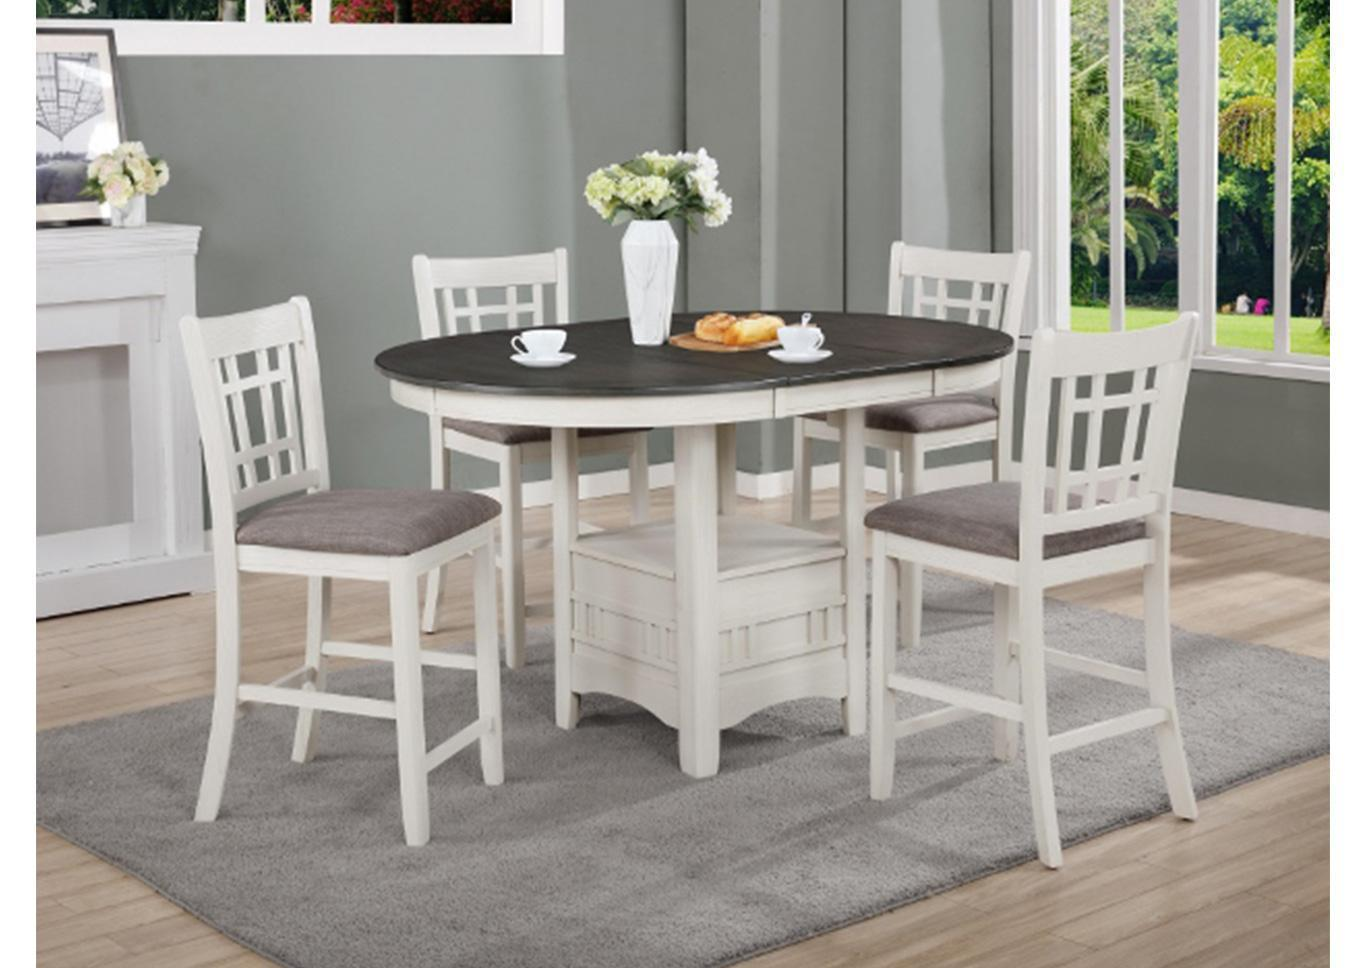 Table & 4 Chairs ,Pre-Memorial Day Sale 2021